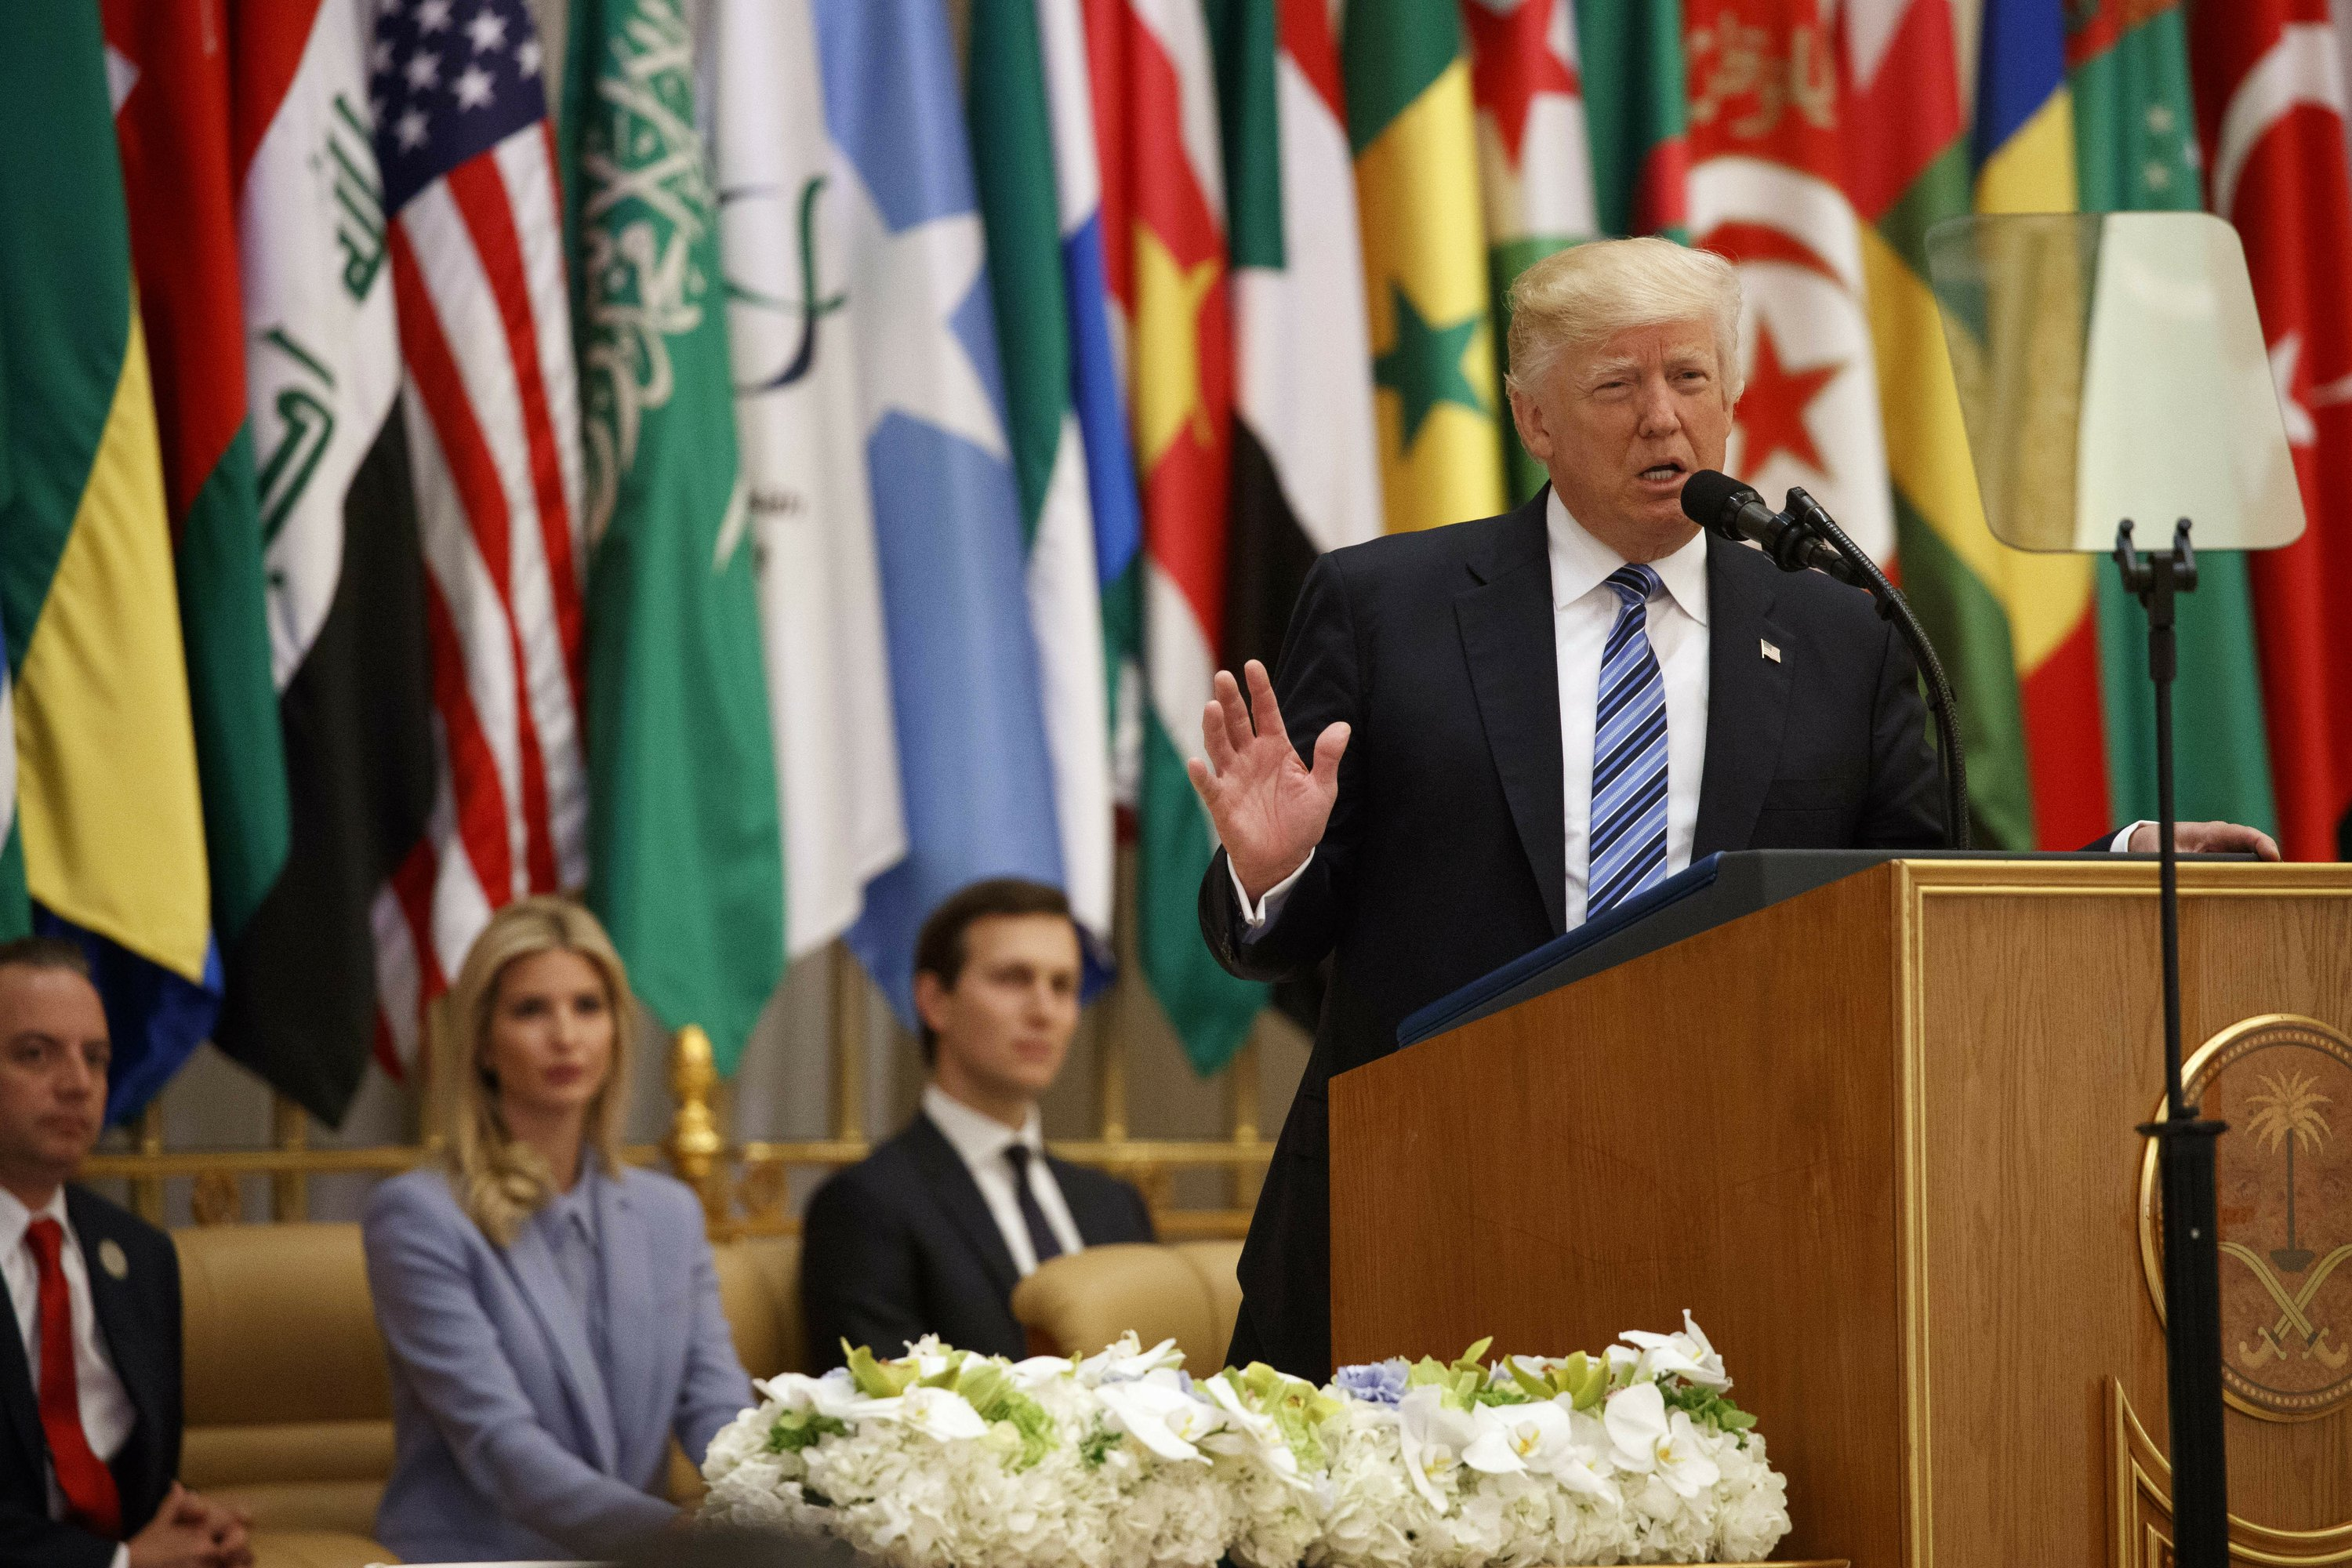 AP FACT CHECK: Trump exaggerates record while abroad